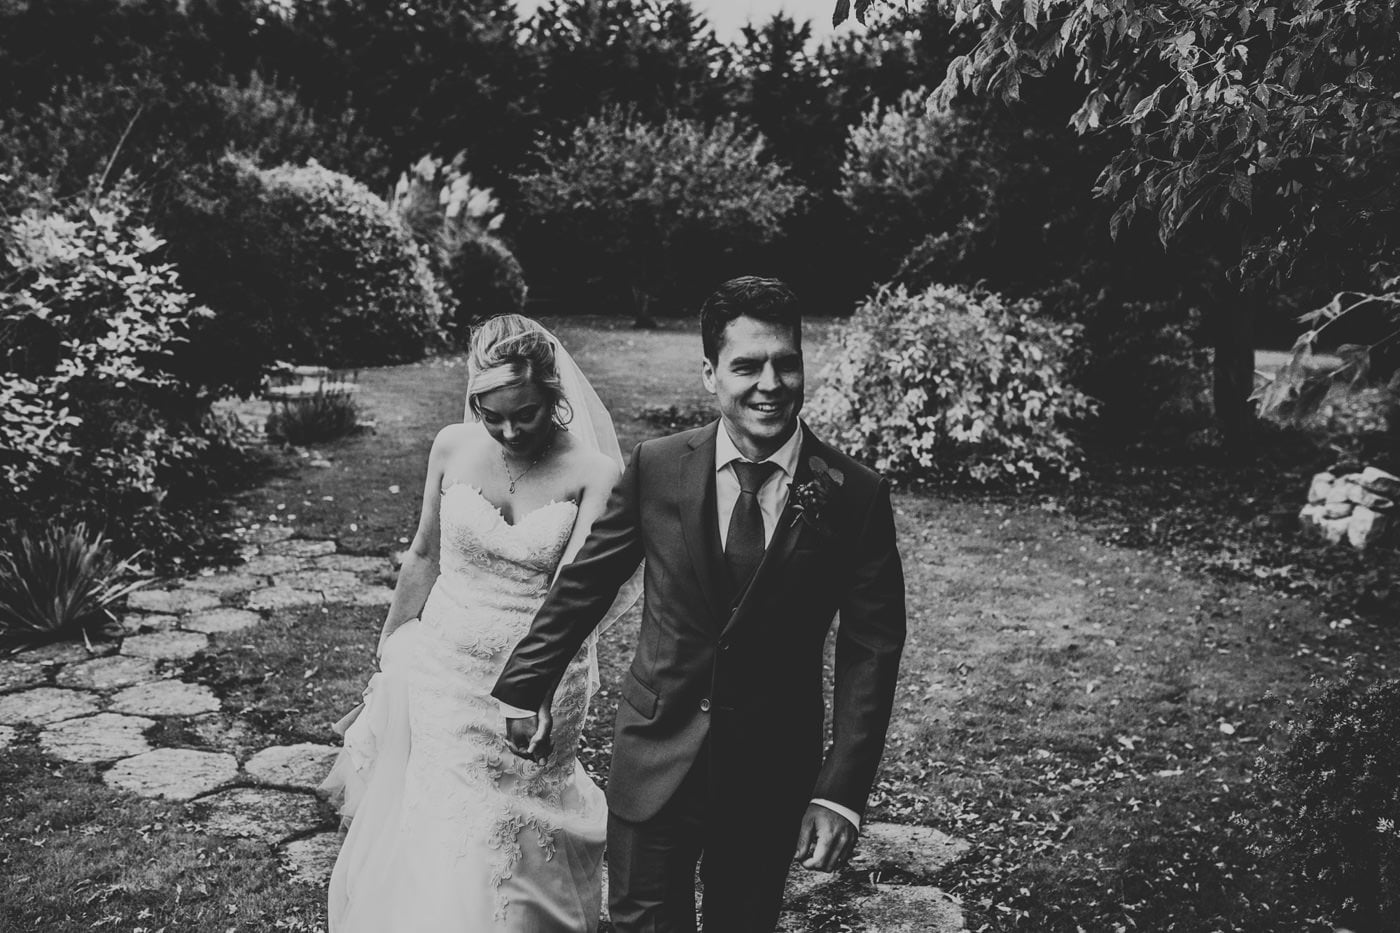 Natalie and Rob, Widbrook Grange, Wiltshire 20